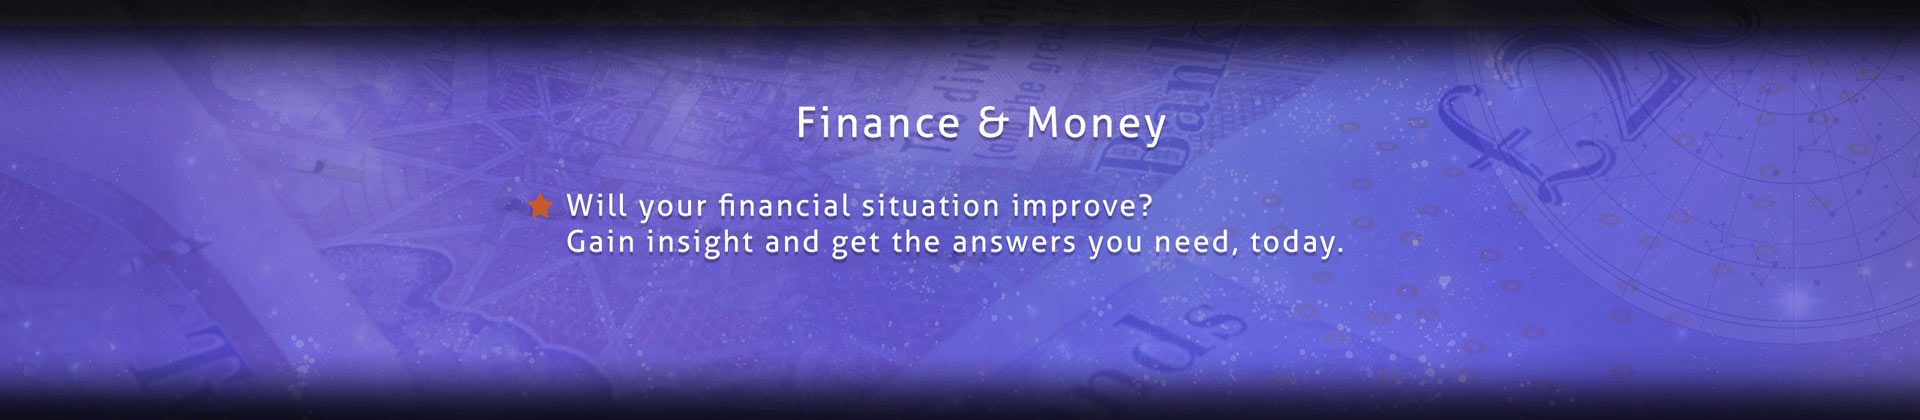 Will your financial situation improve? Gain insight and get the answers you need, today.